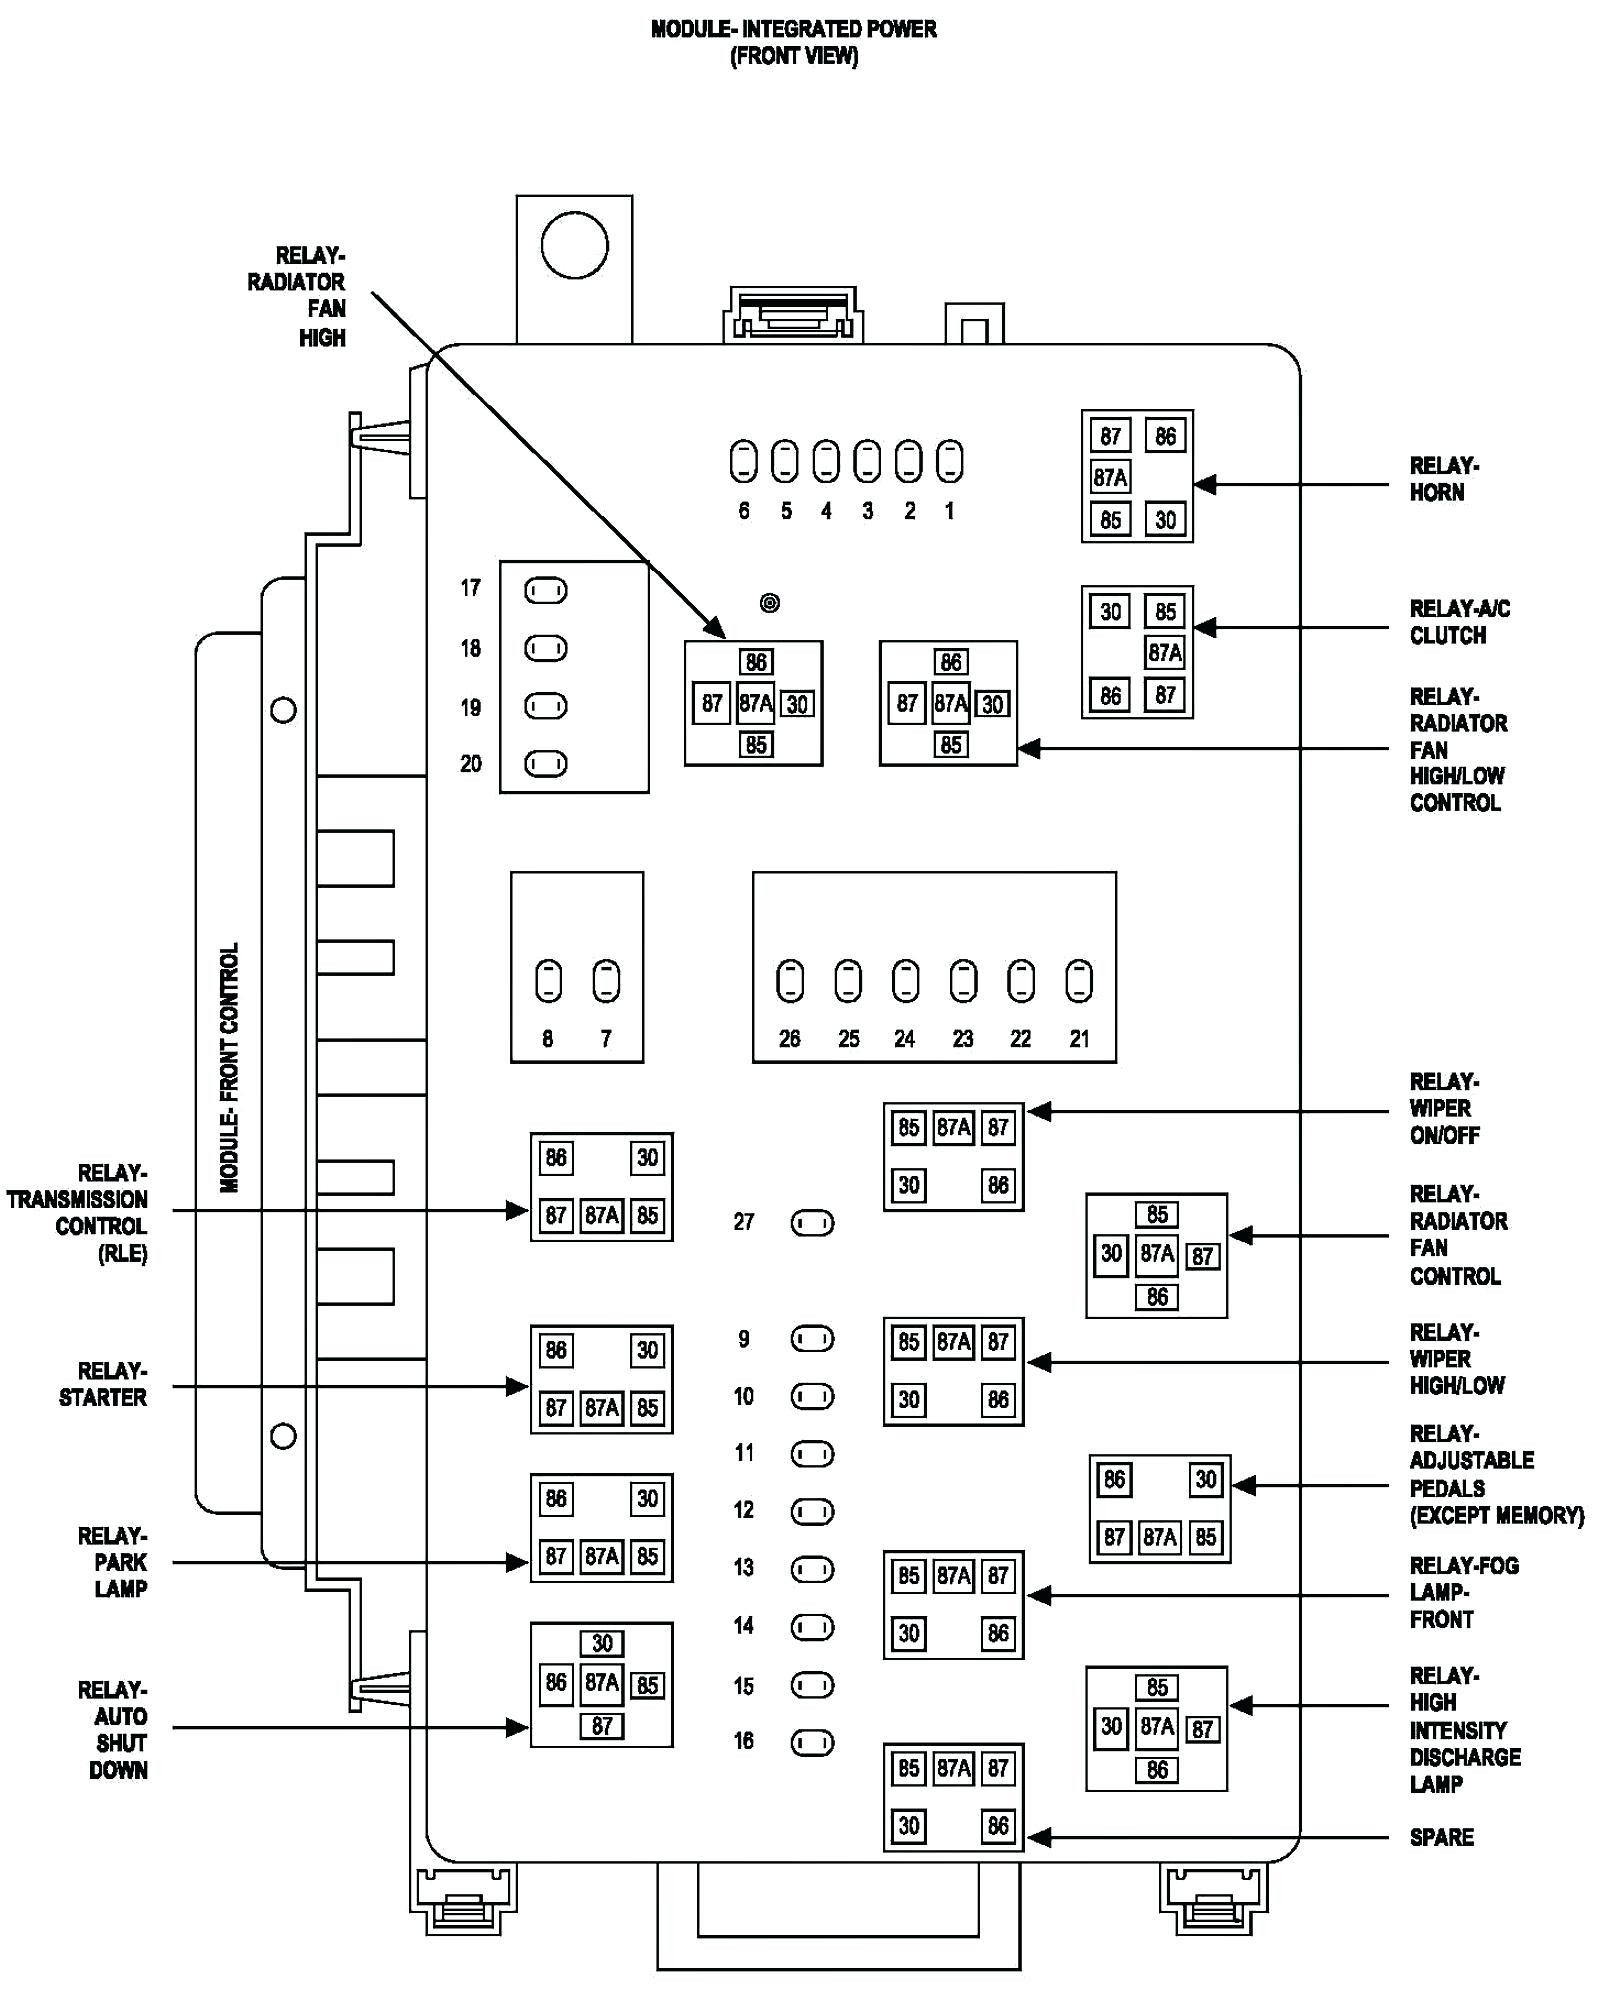 Fuse Box 1989 Suzuki Swift Wiring Diagram